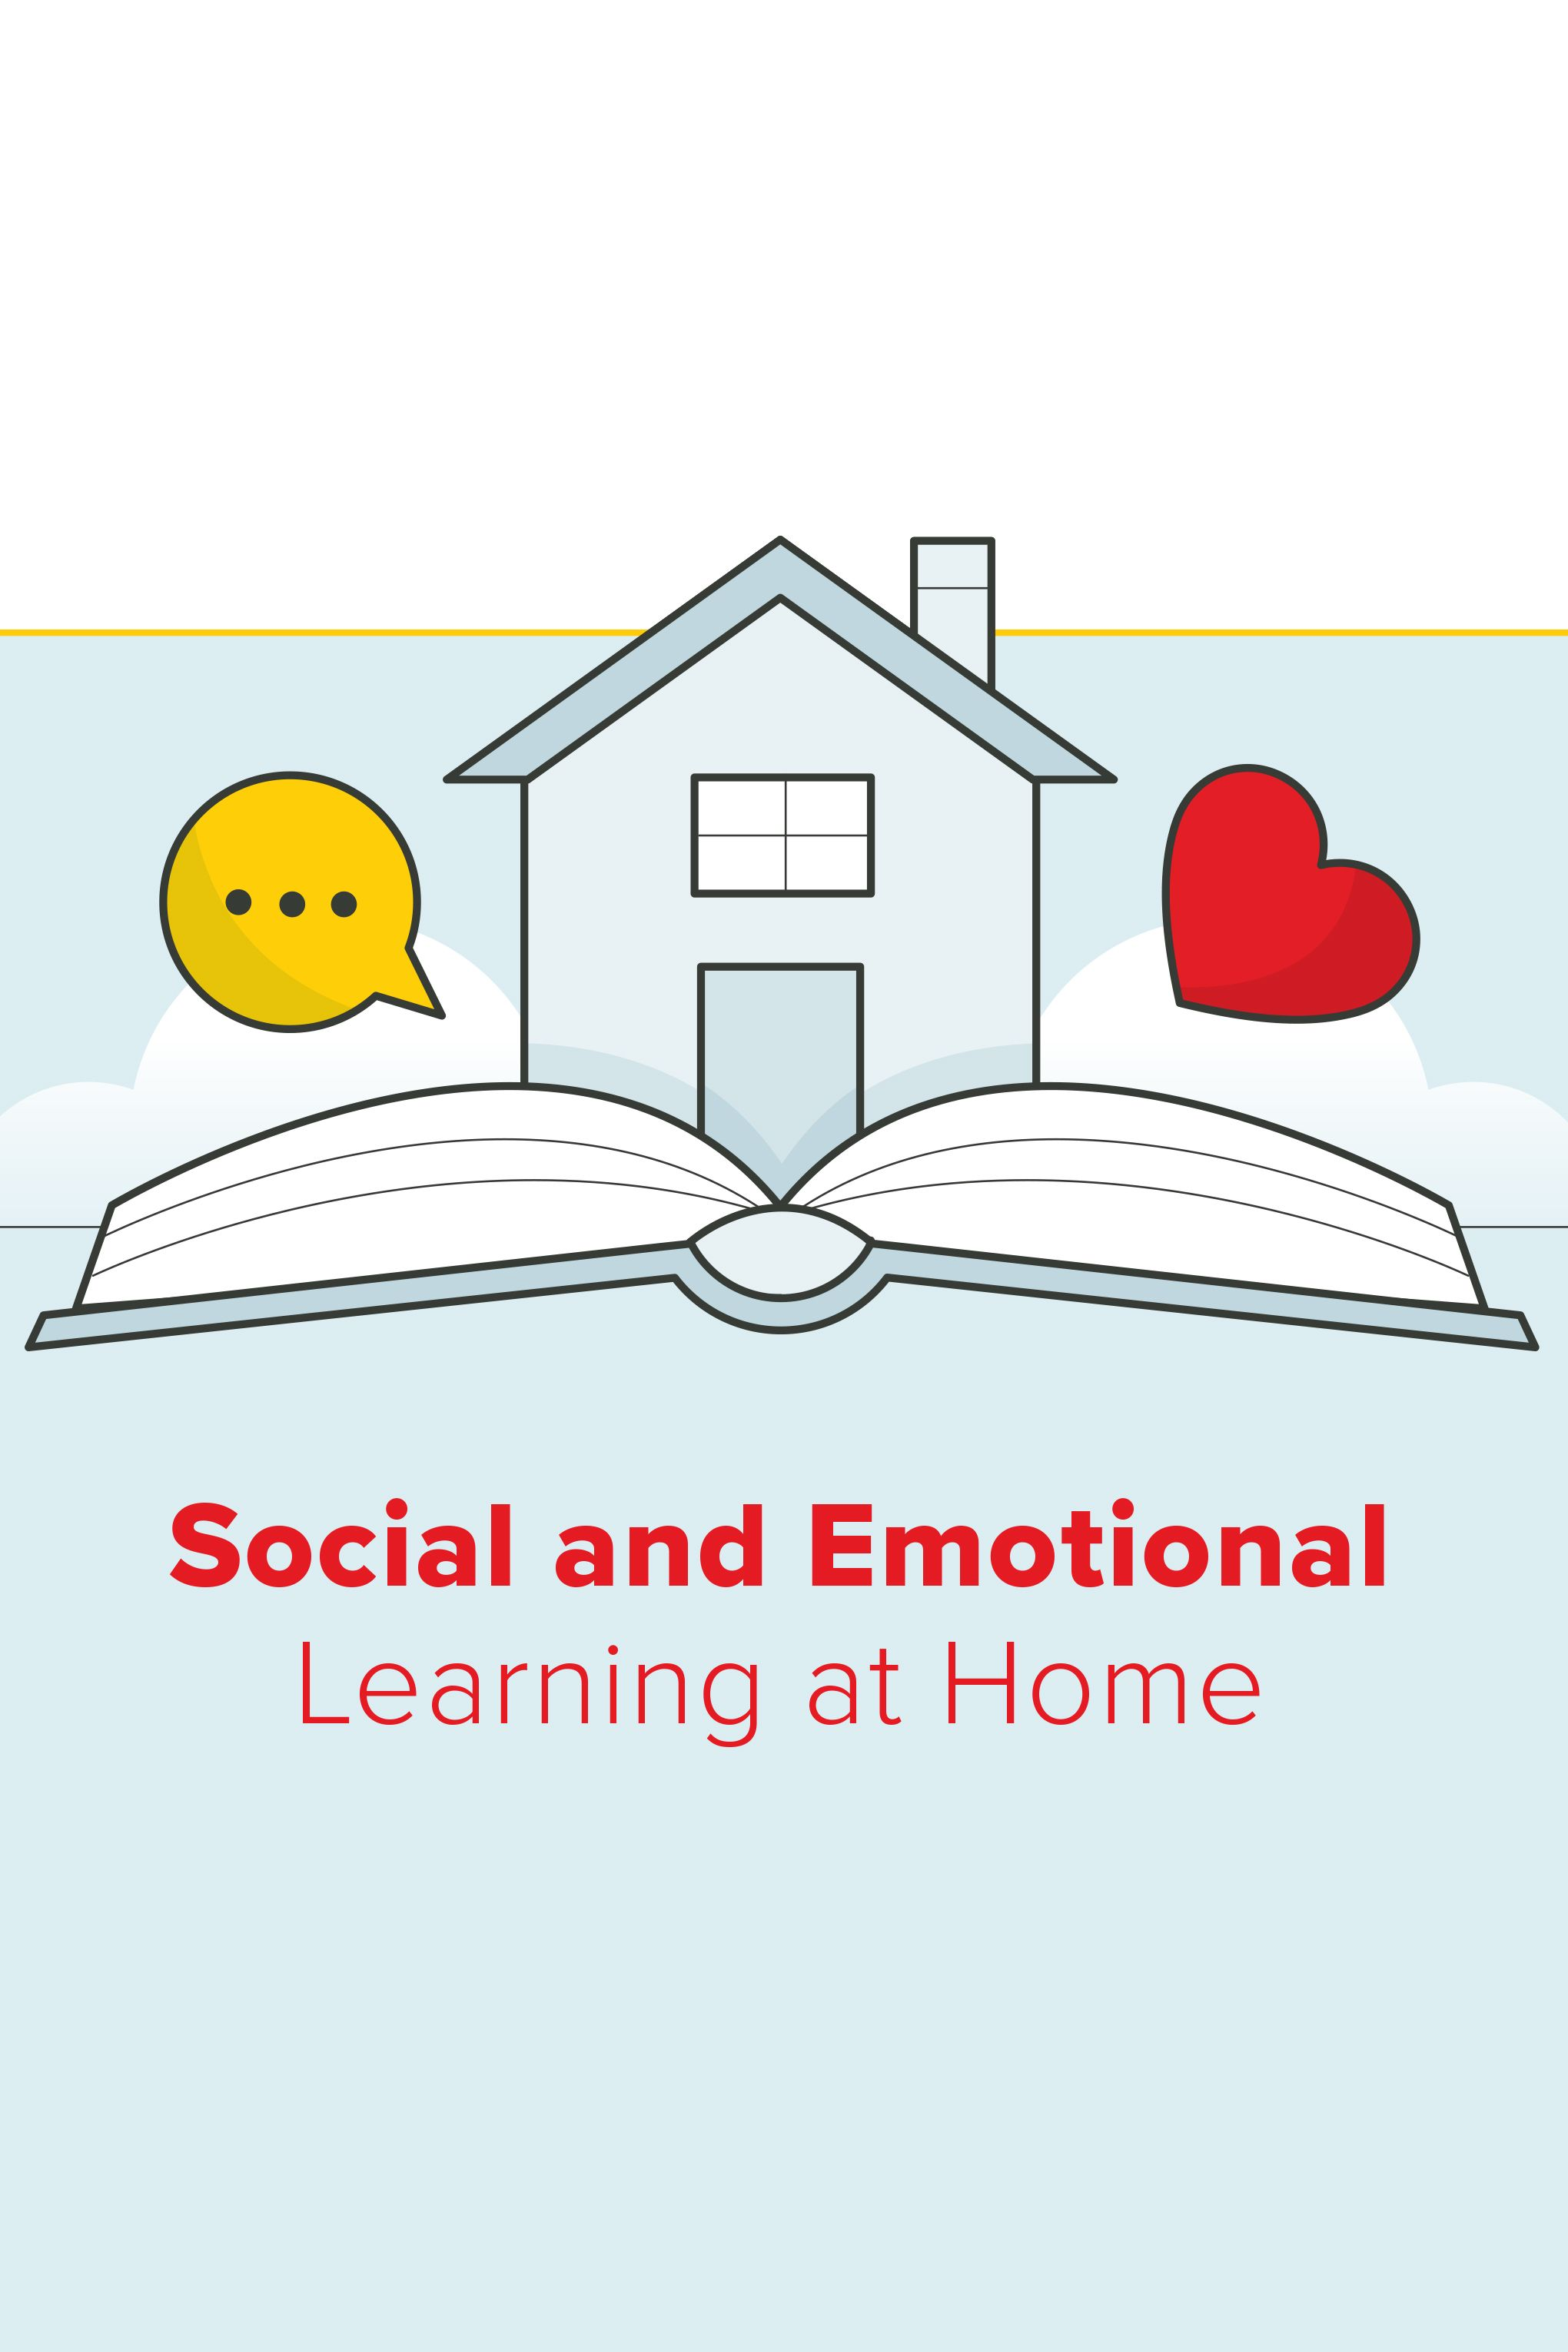 Social And Emotional Learning At Home Checklist Social Emotional Learning Emotional Development Emotions